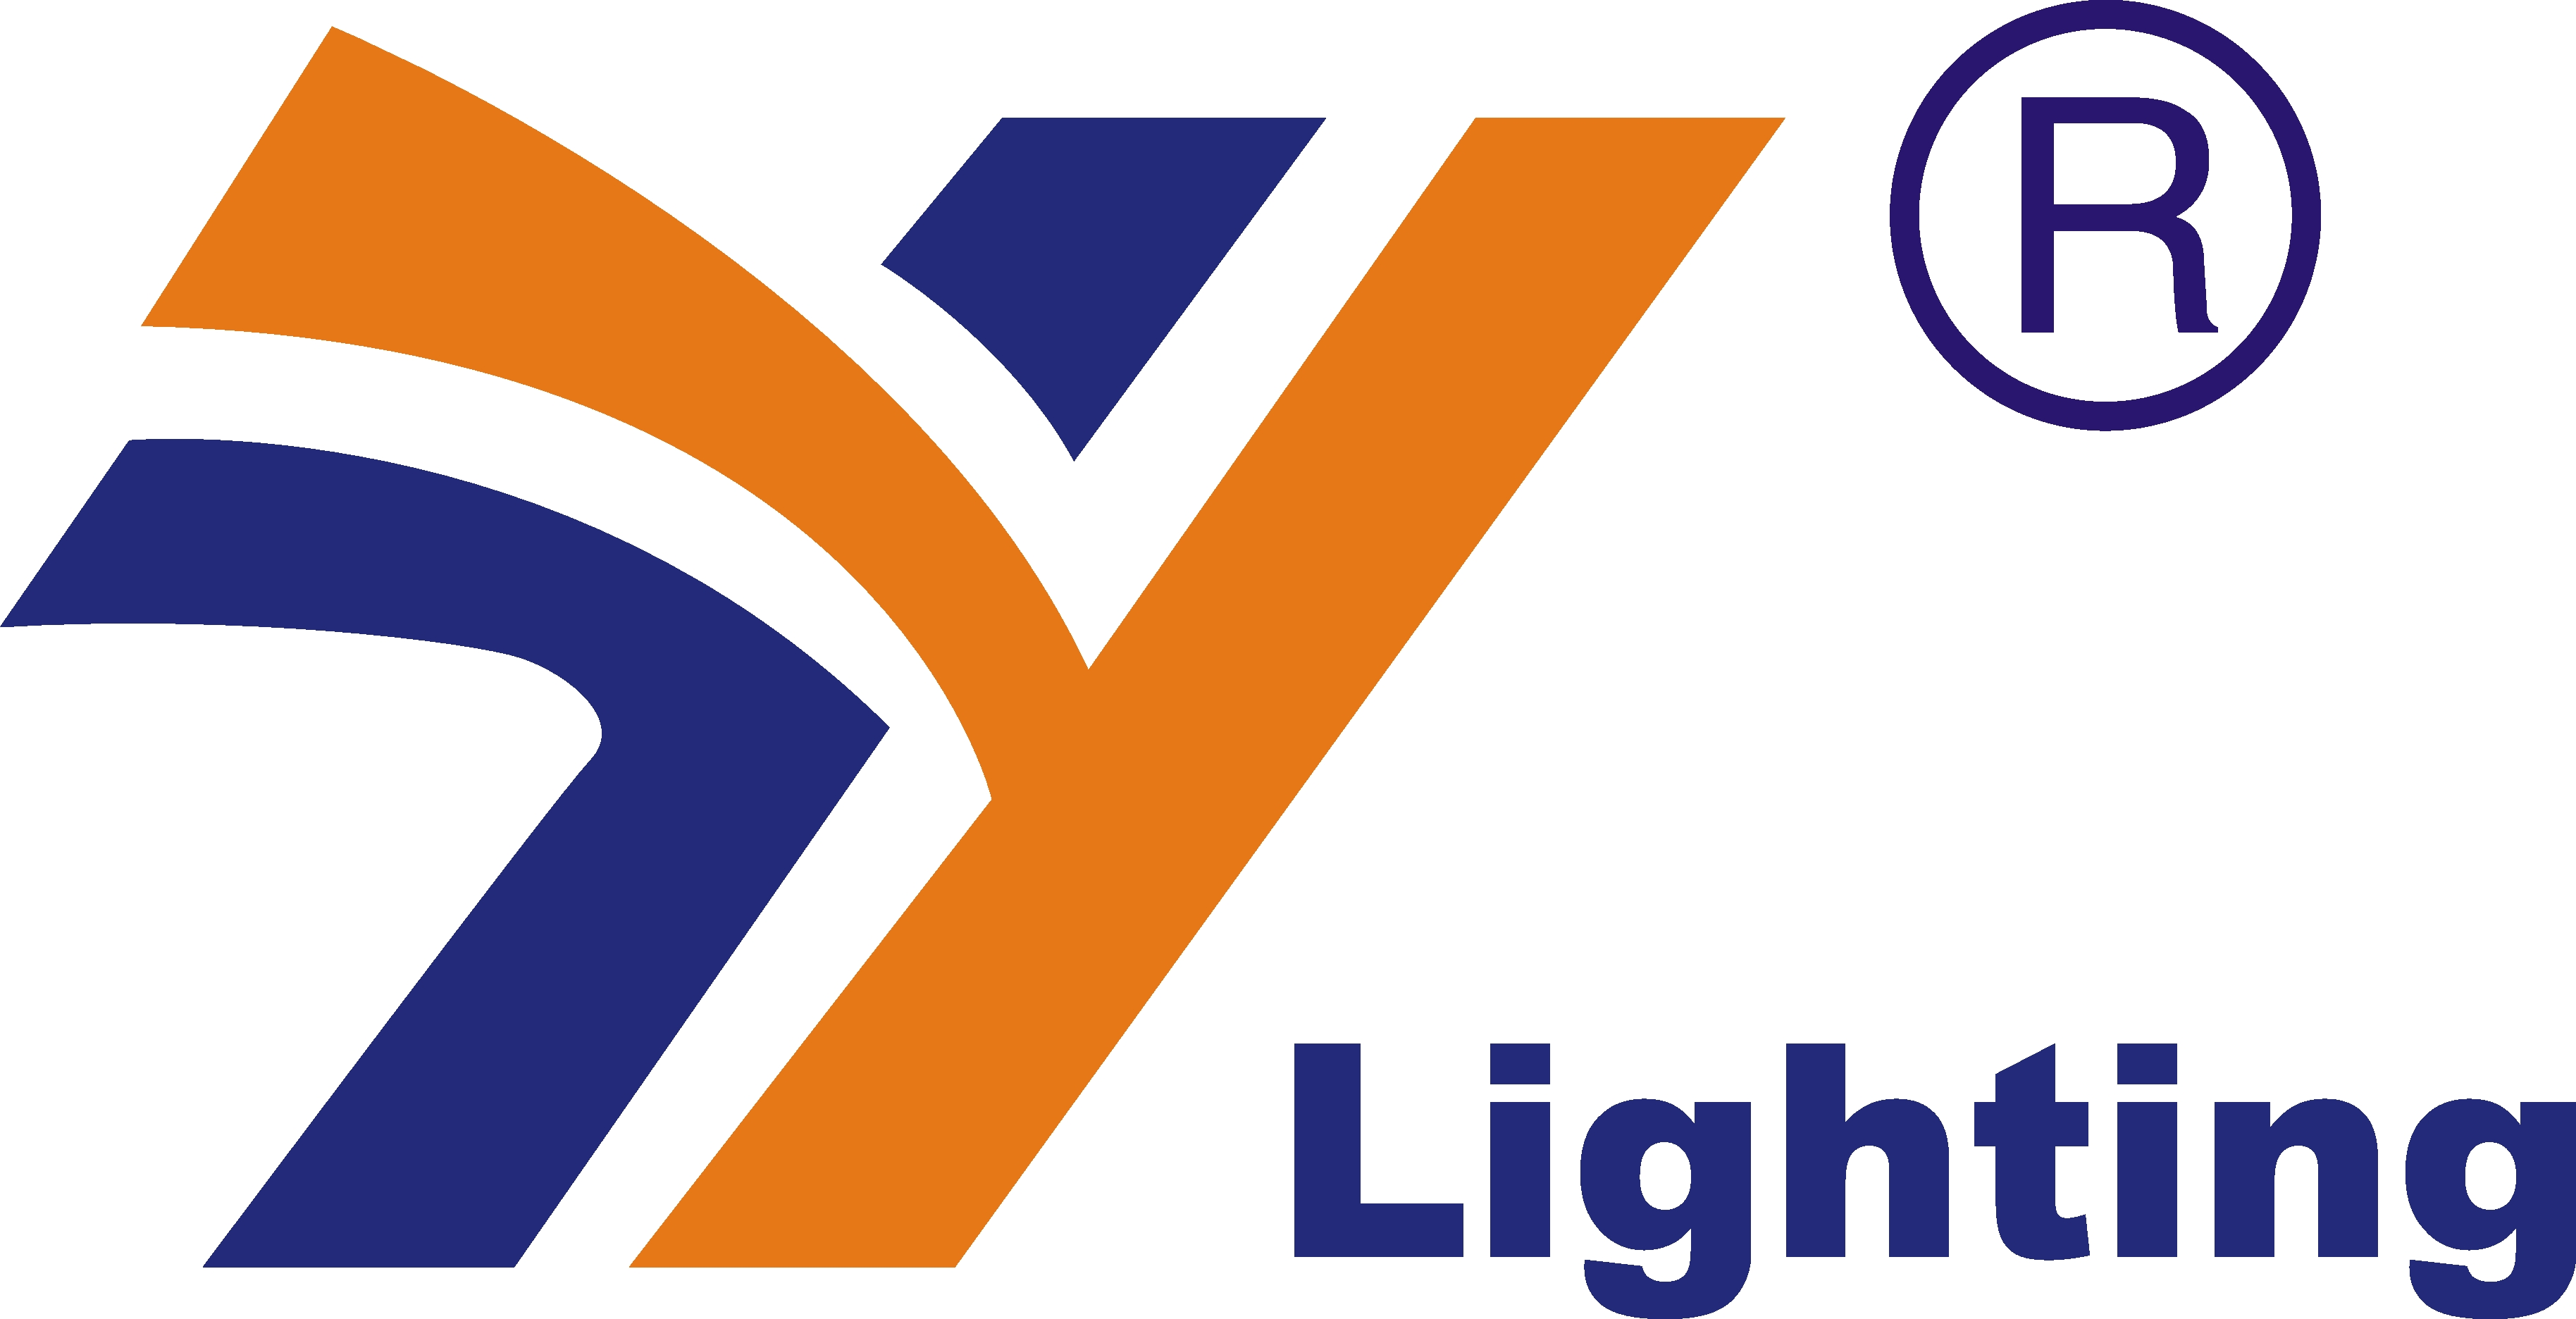 NINGBO YIYUAN LIGHTING TECHNOLOGY CO.,LTD.